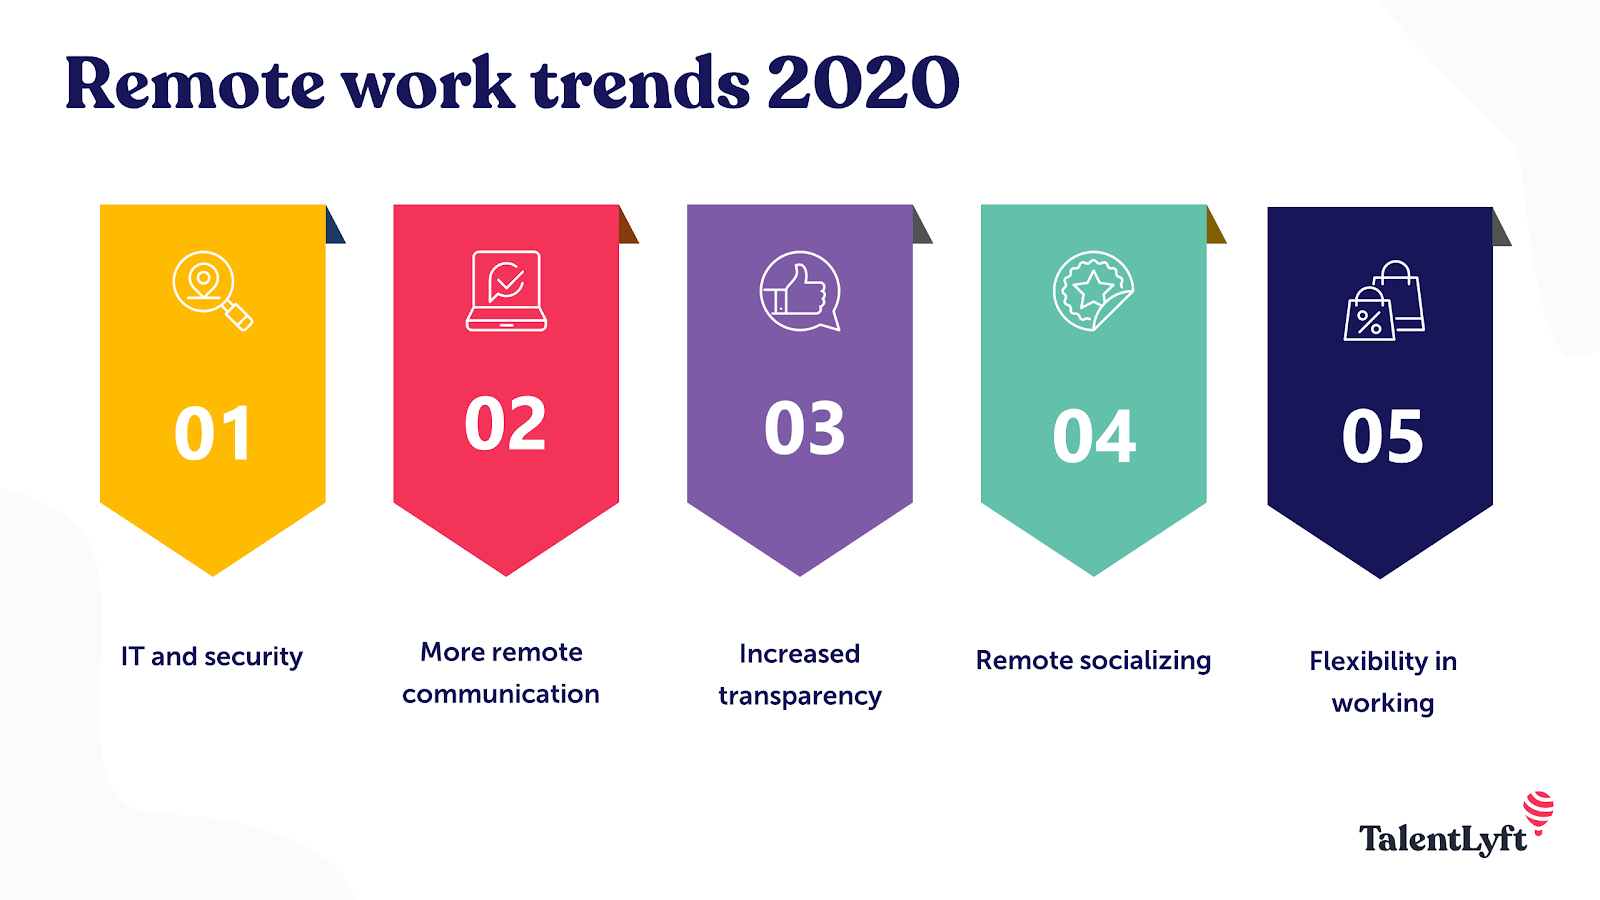 Remote work trends 2020